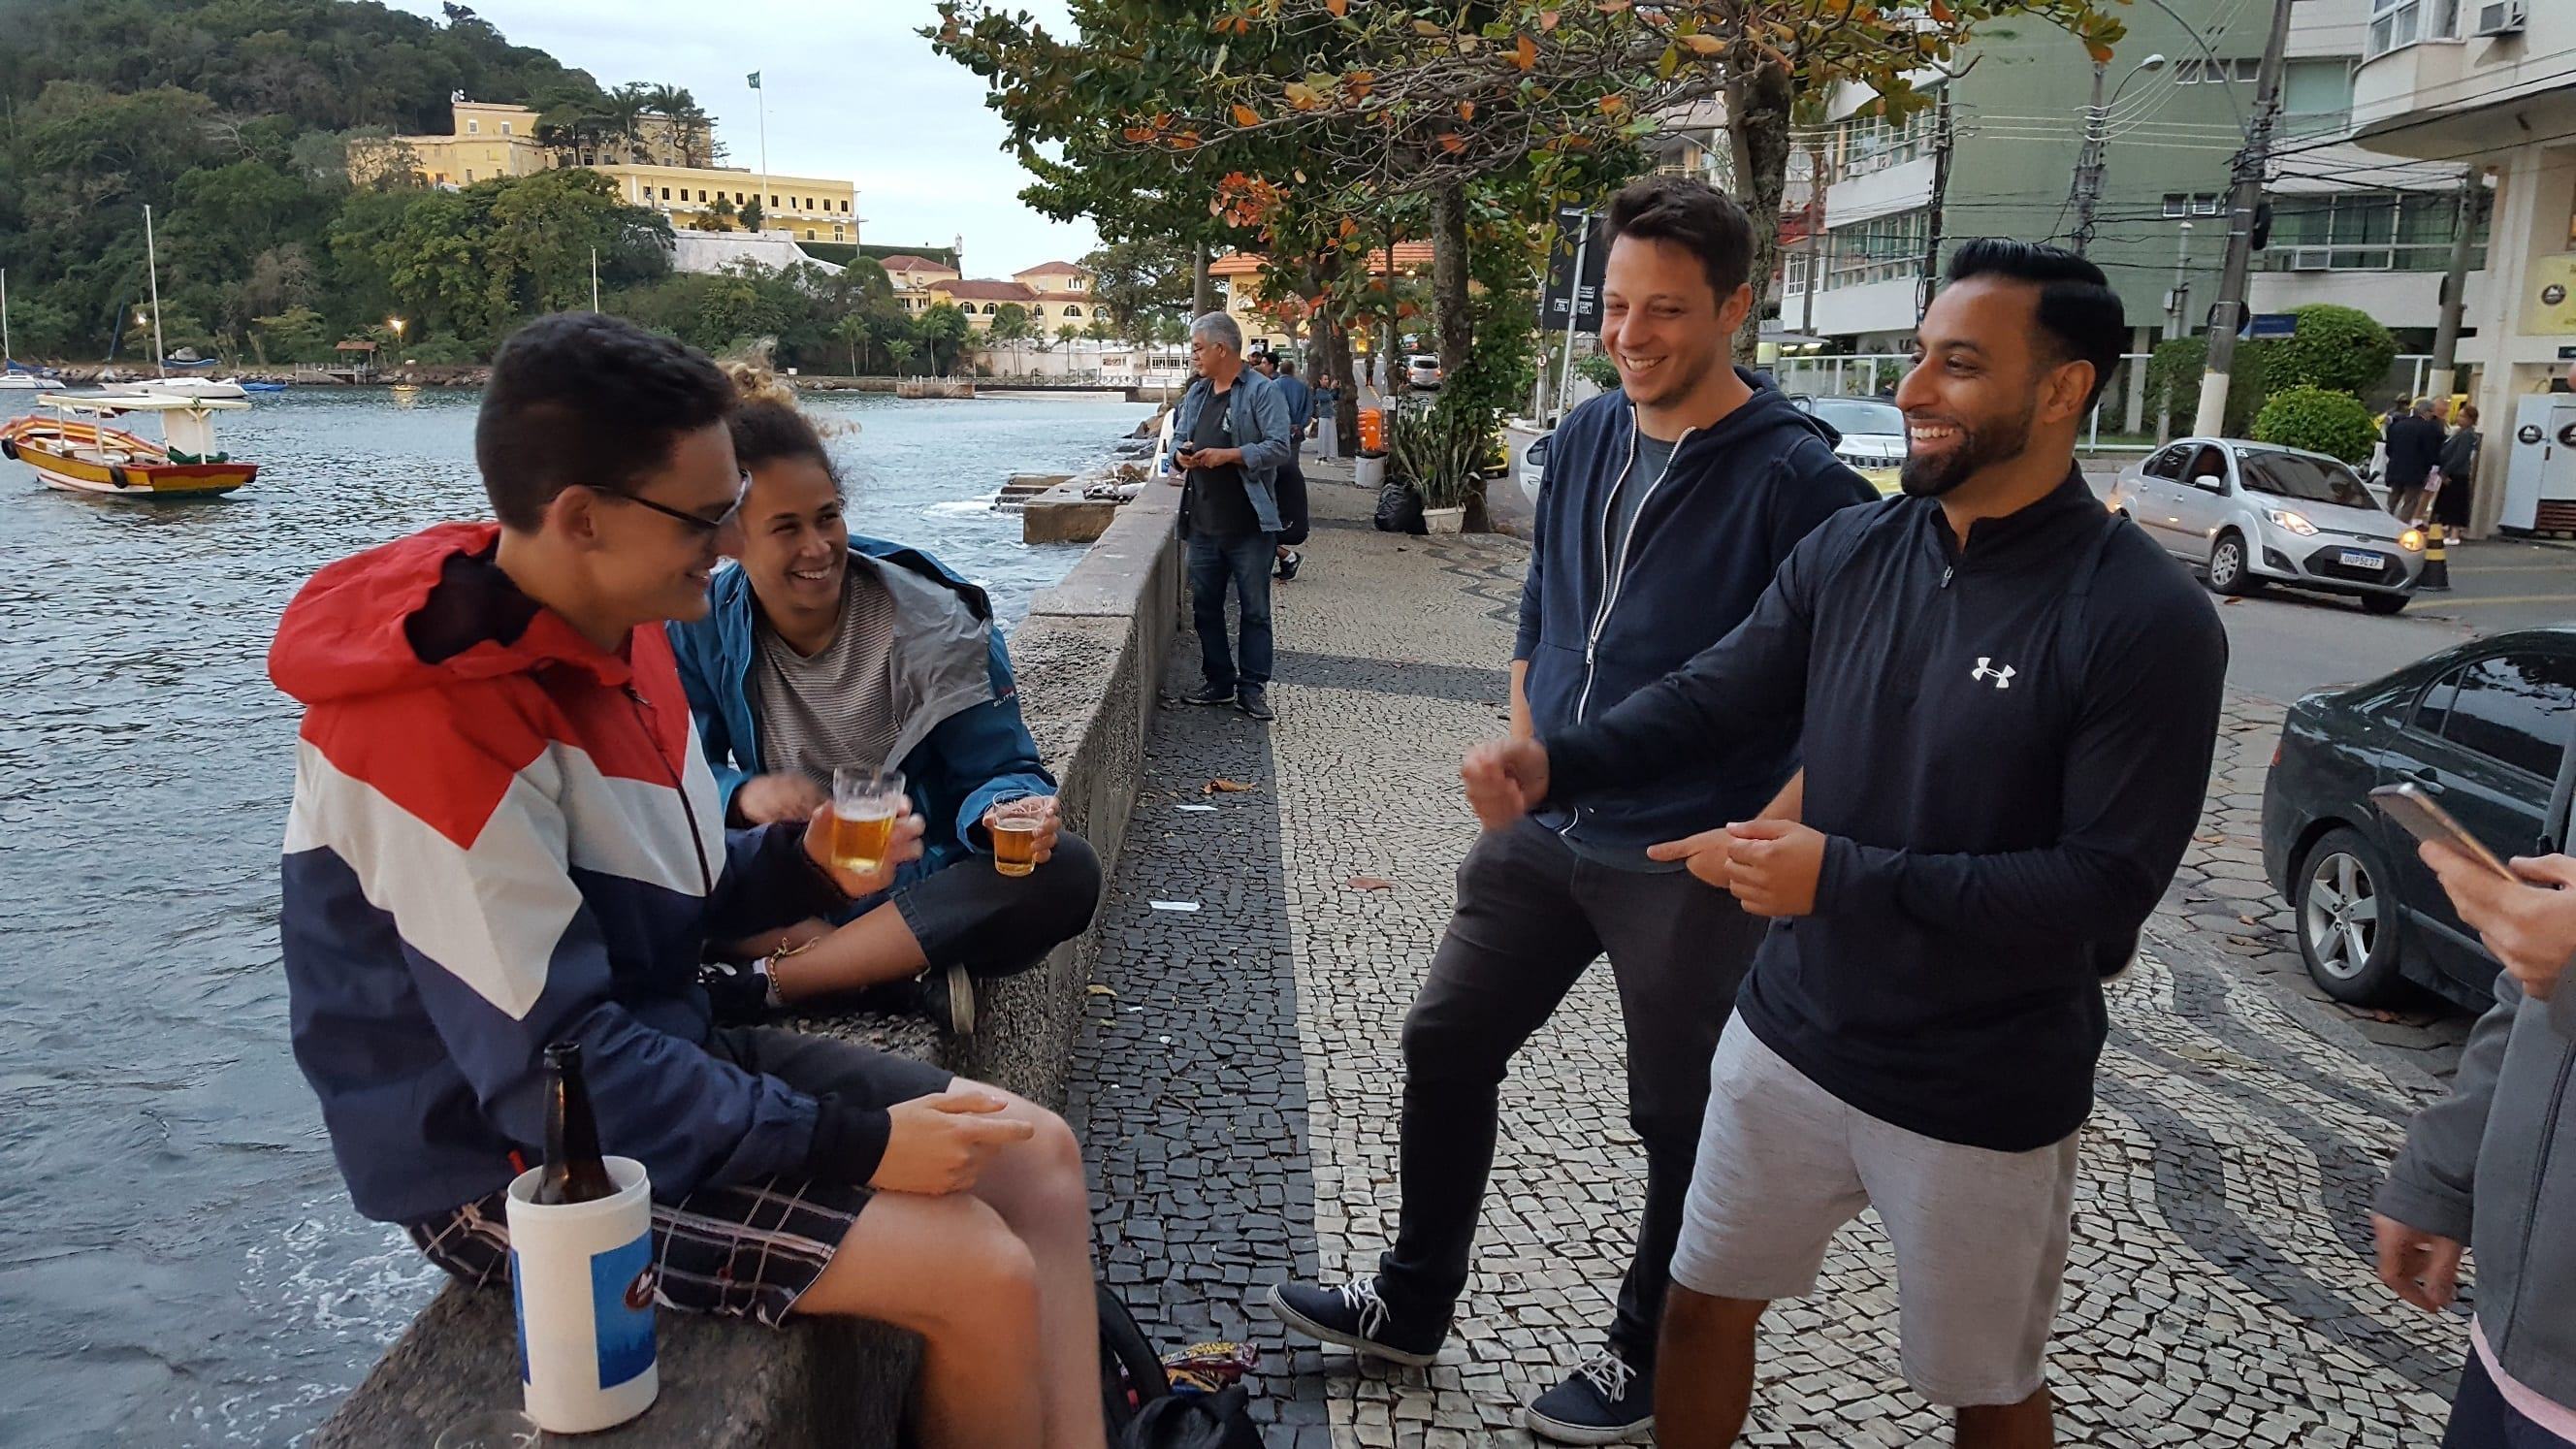 Students of Portuguese talking and telling jokes at the Urca RioLIVE! with Rio & Learn Portuguese School.